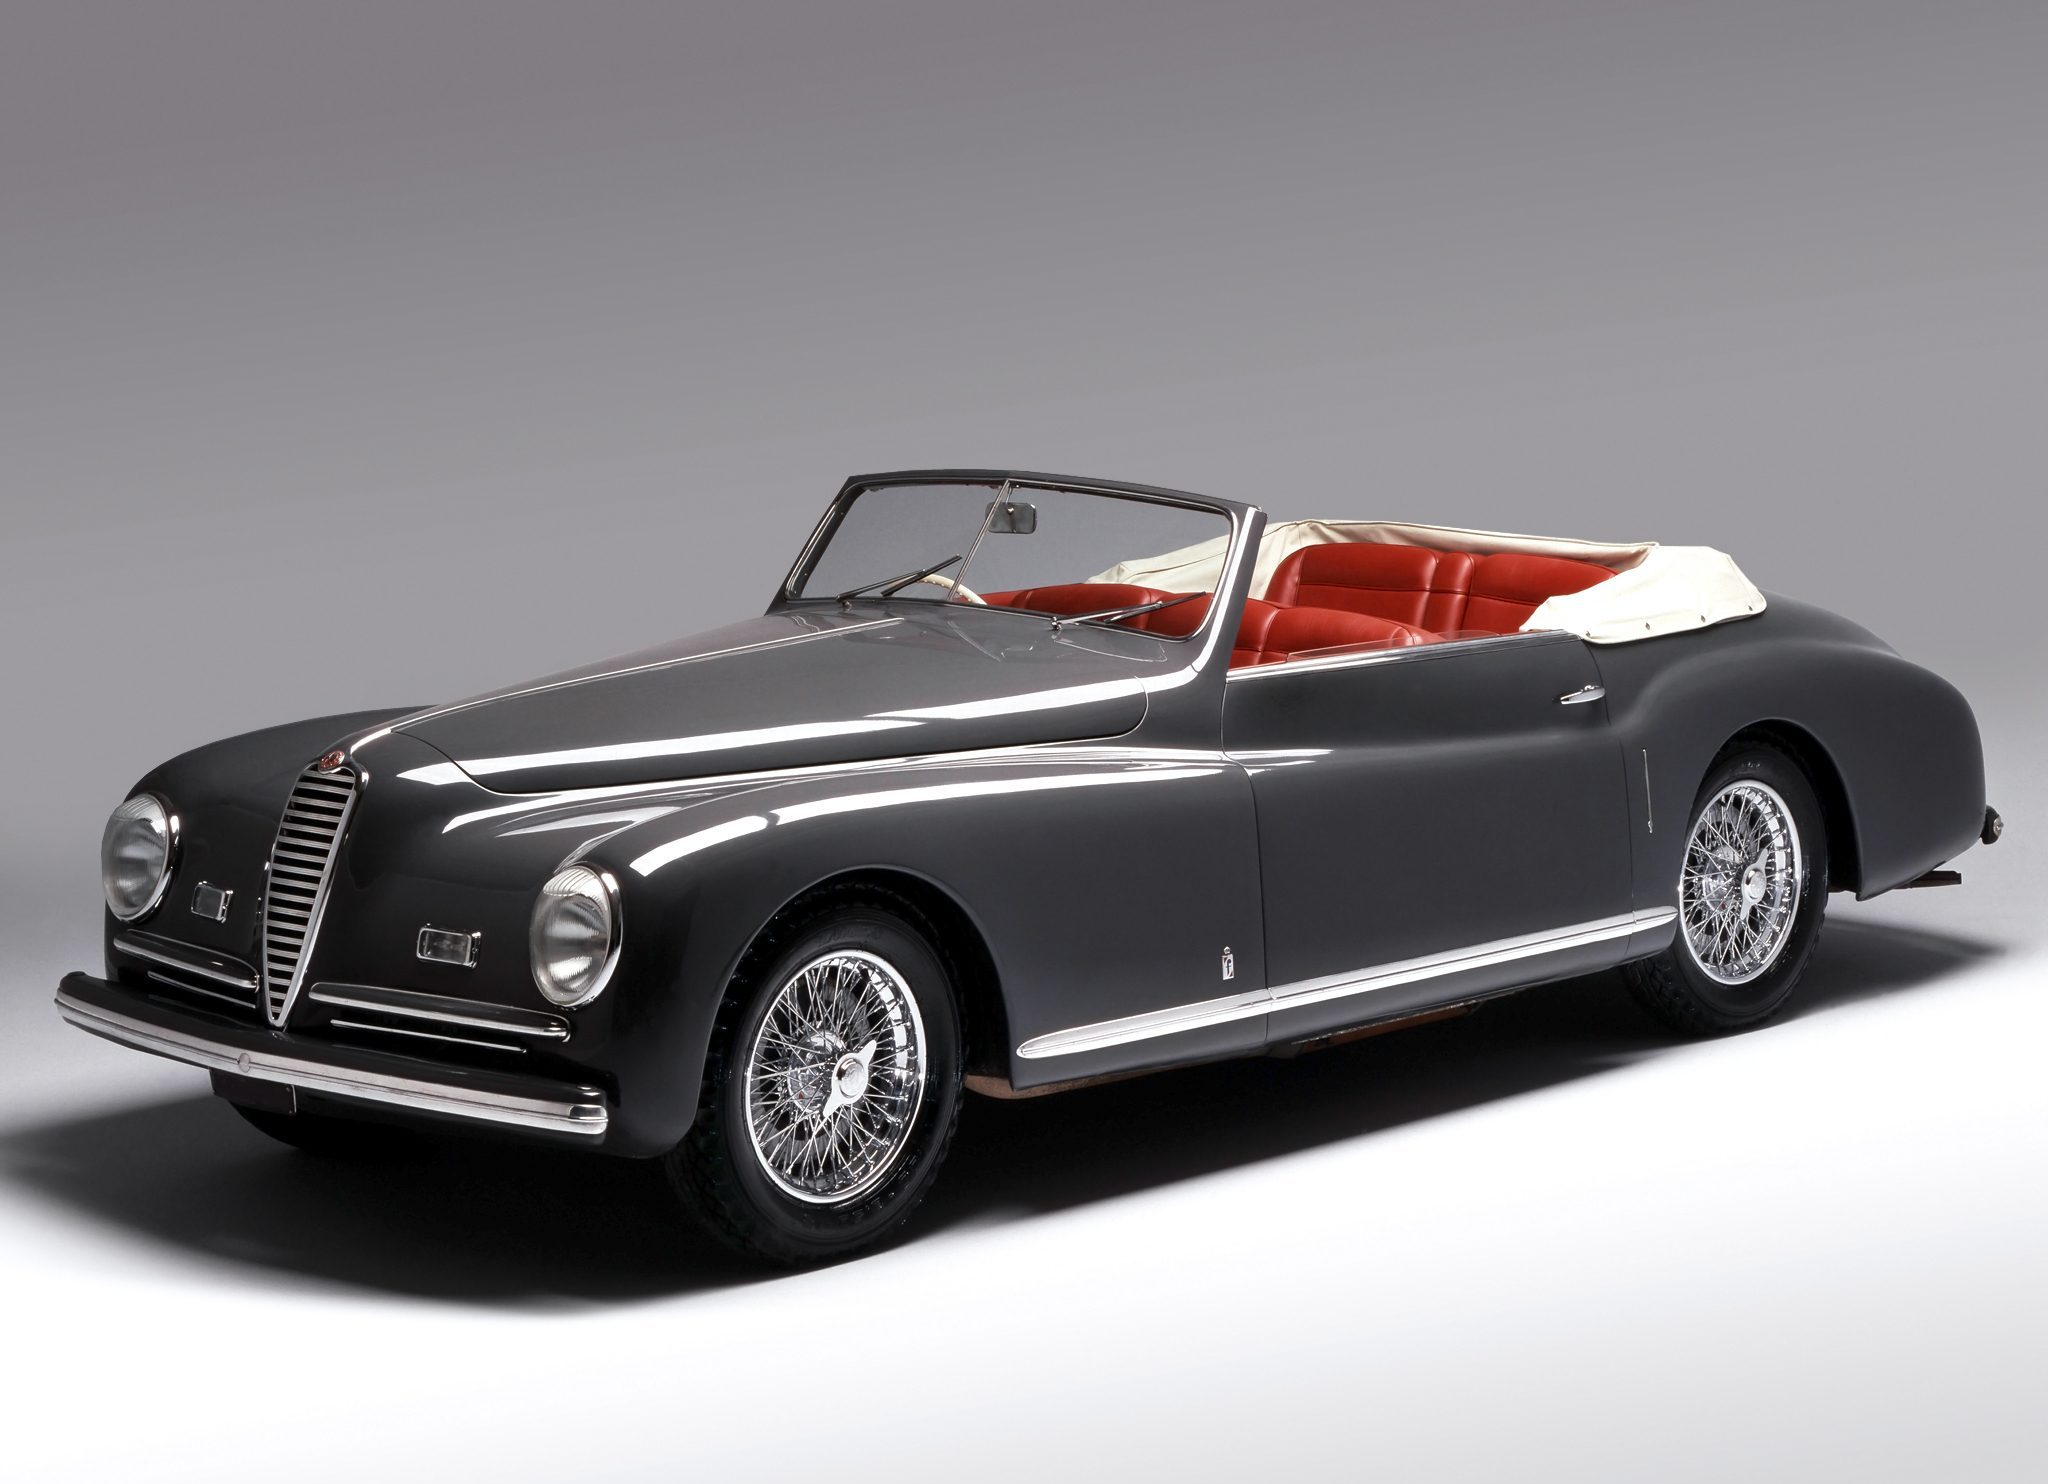 1947 Alfa Romeo 6c 2500 Ss Cabriolet Wallpapers Viruscars